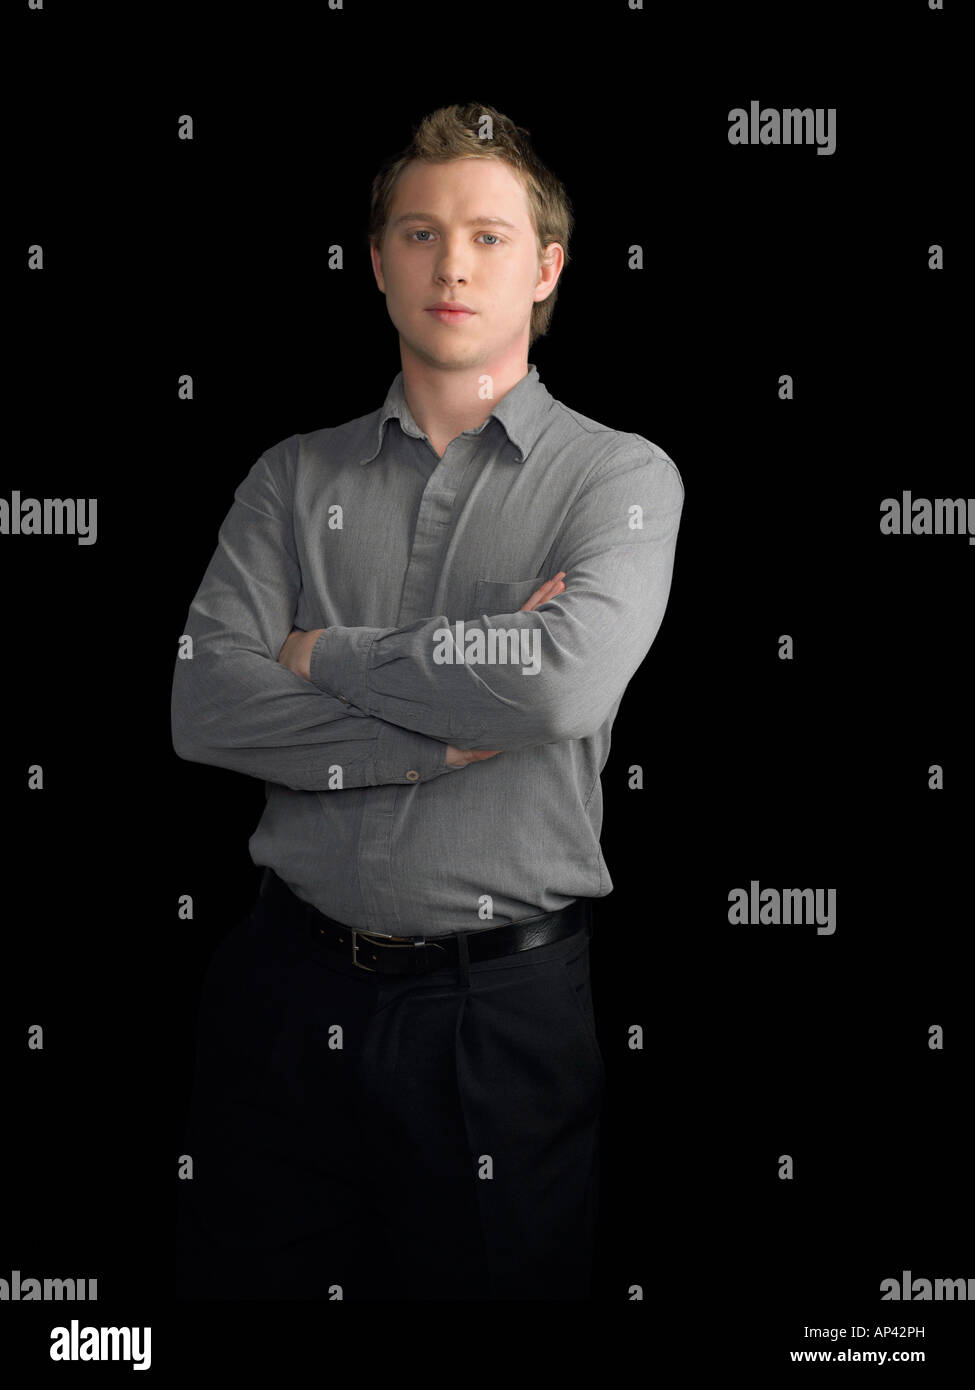 Young man with crossed arms - Stock Image